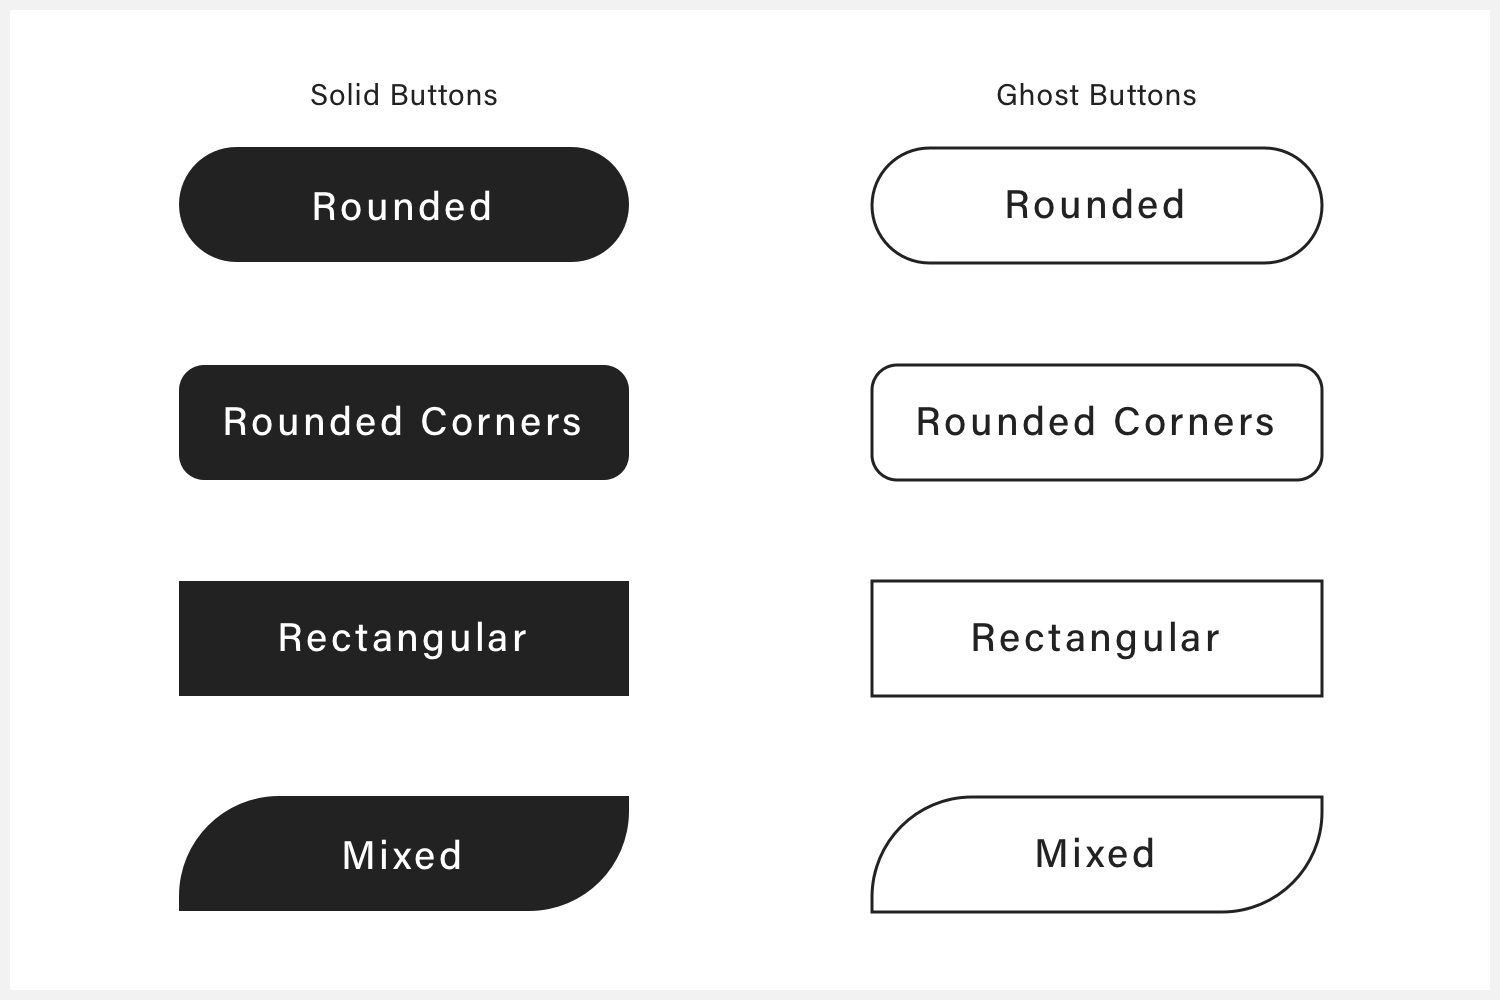 Several solid and ghost buttons that illustrate different button shapes.